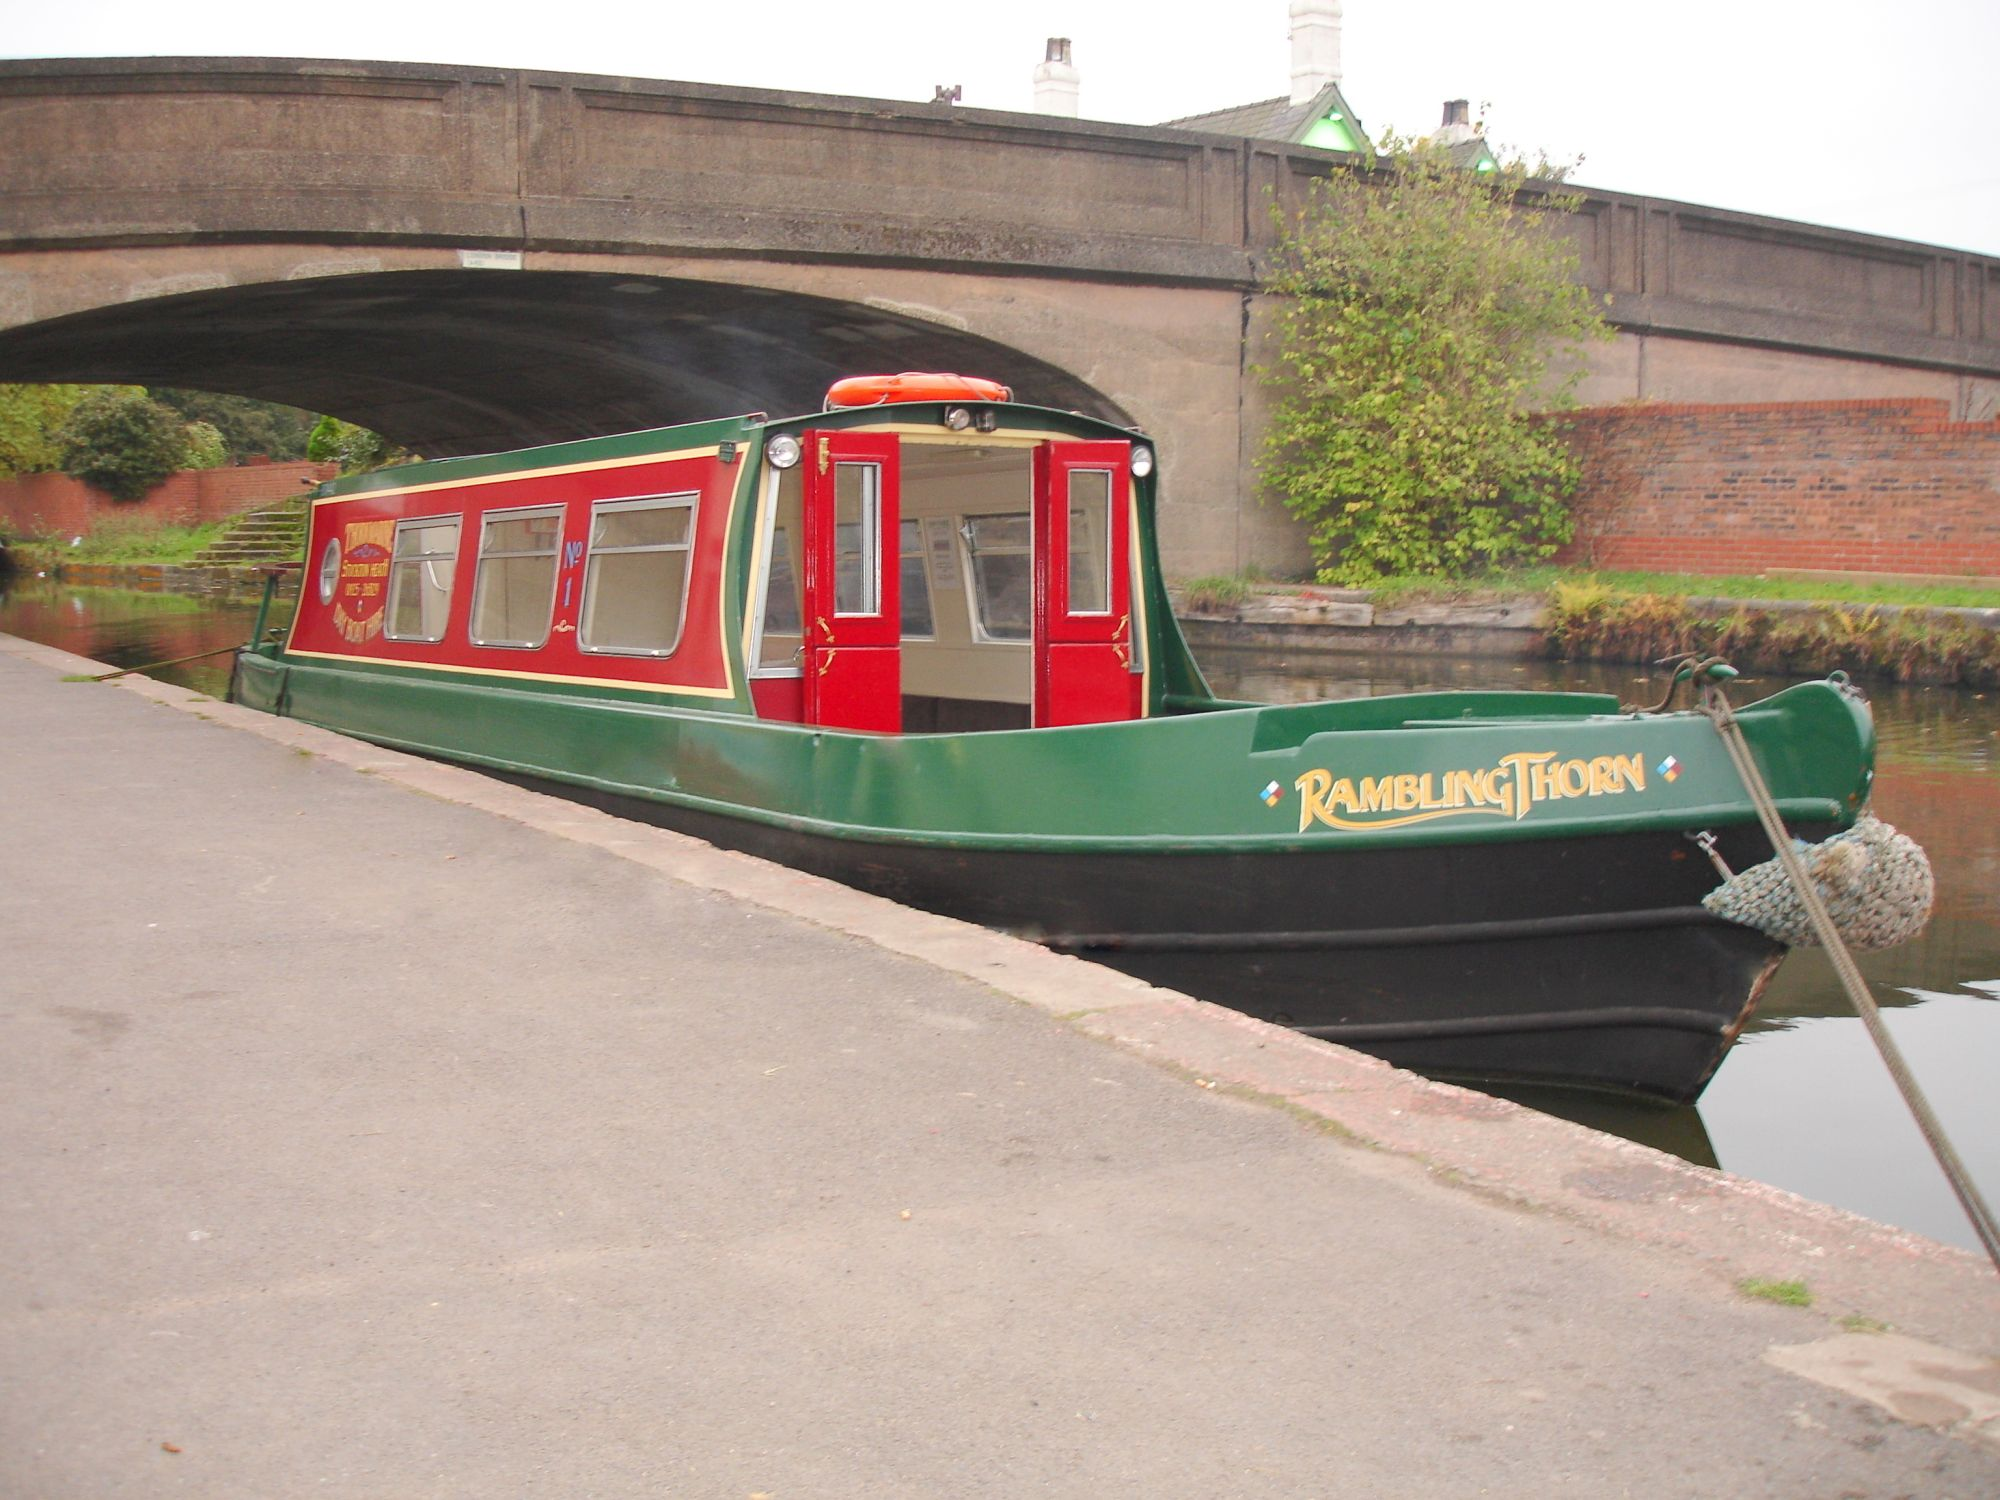 Thorn marine Day boat hire London Bridge Stockton heath Warrington Cheshire Bridgewater canal